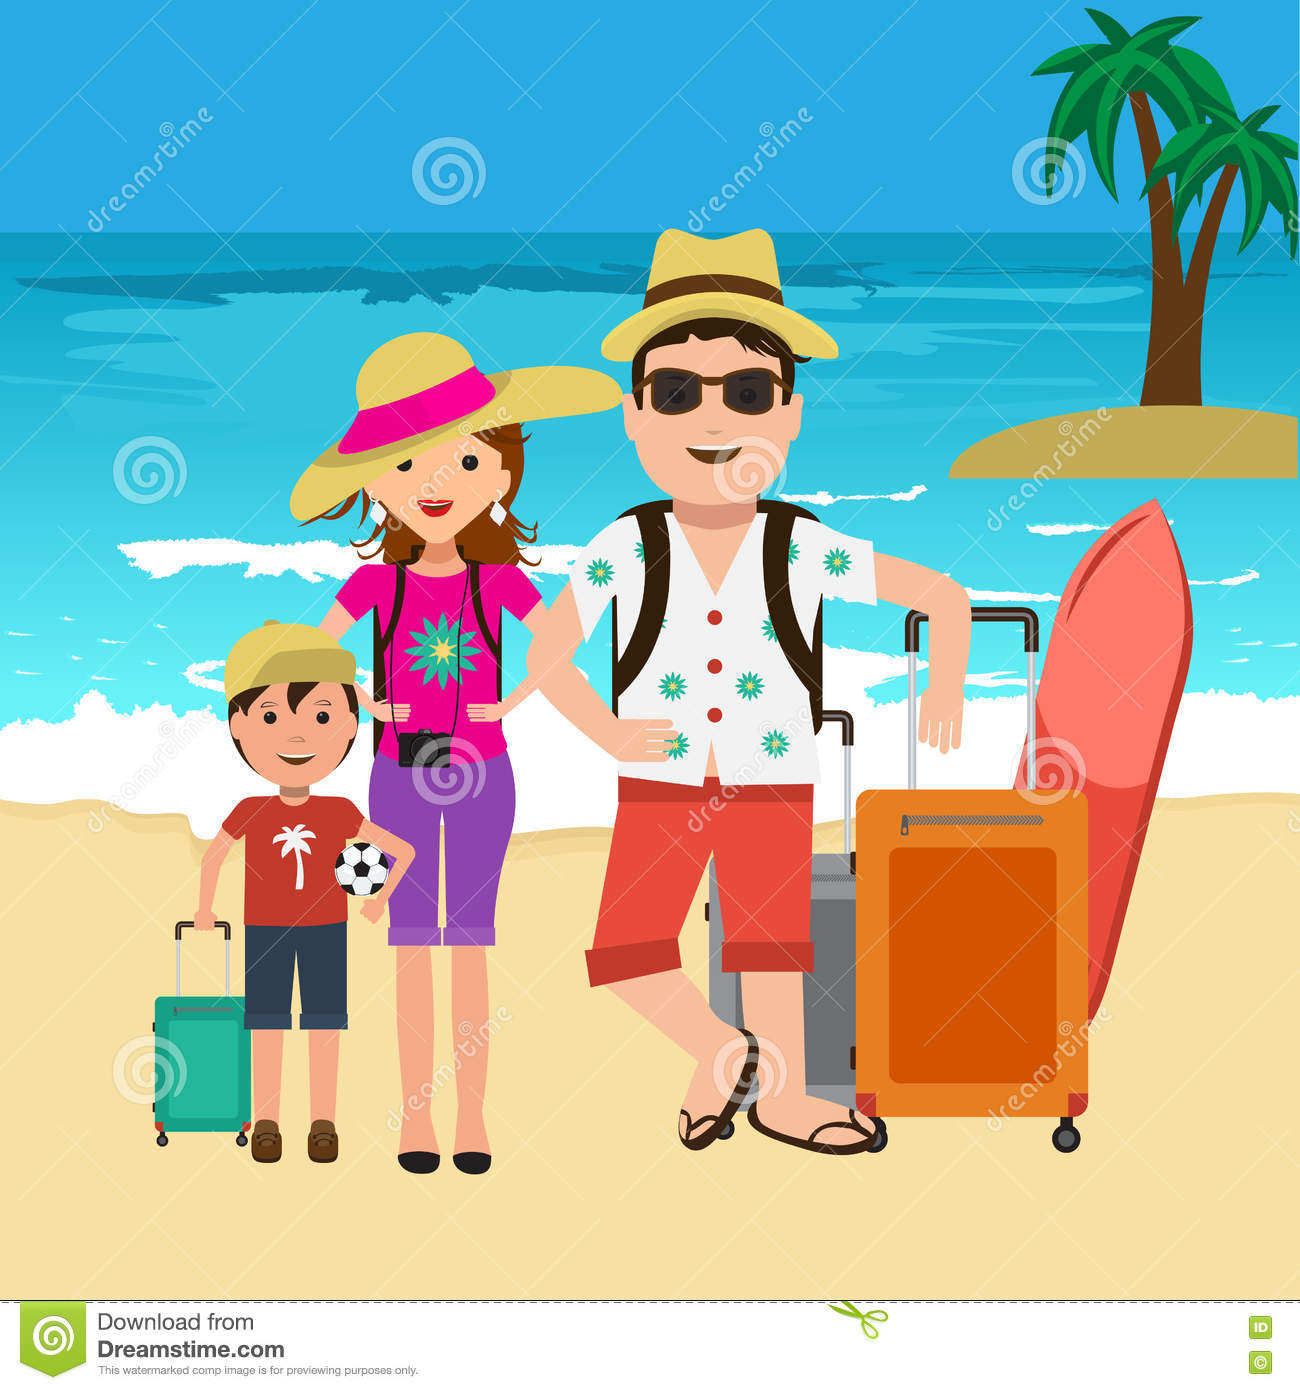 Family Pictures In The Beach: Vector Illustration Of Happy Family Going On Vacation